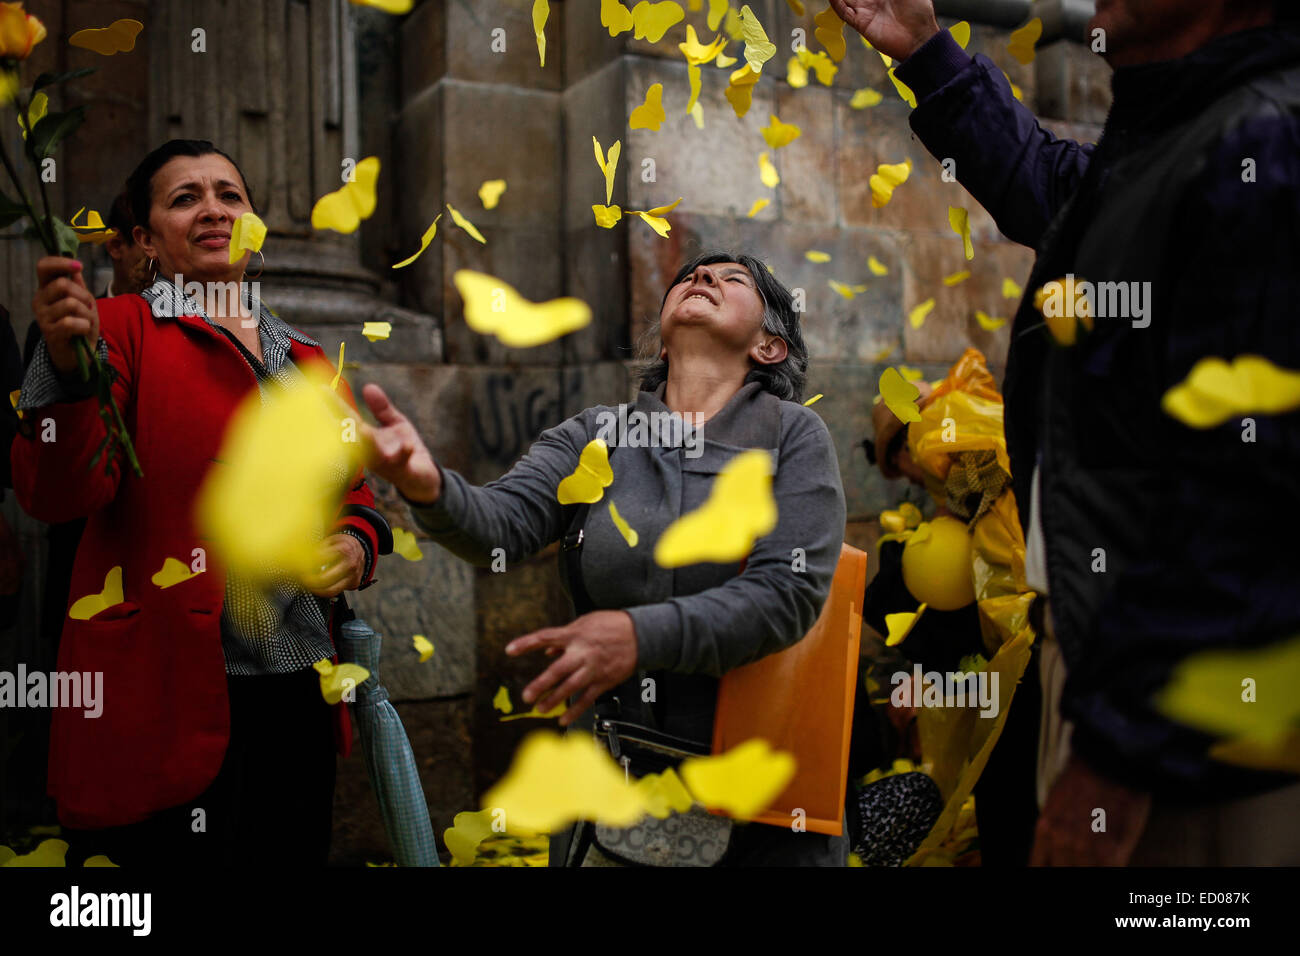 Beijing, Colombia. 22nd Apr, 2014. Residents play with papercuts of butterflies in front of the Primary Cathedral Stock Photo